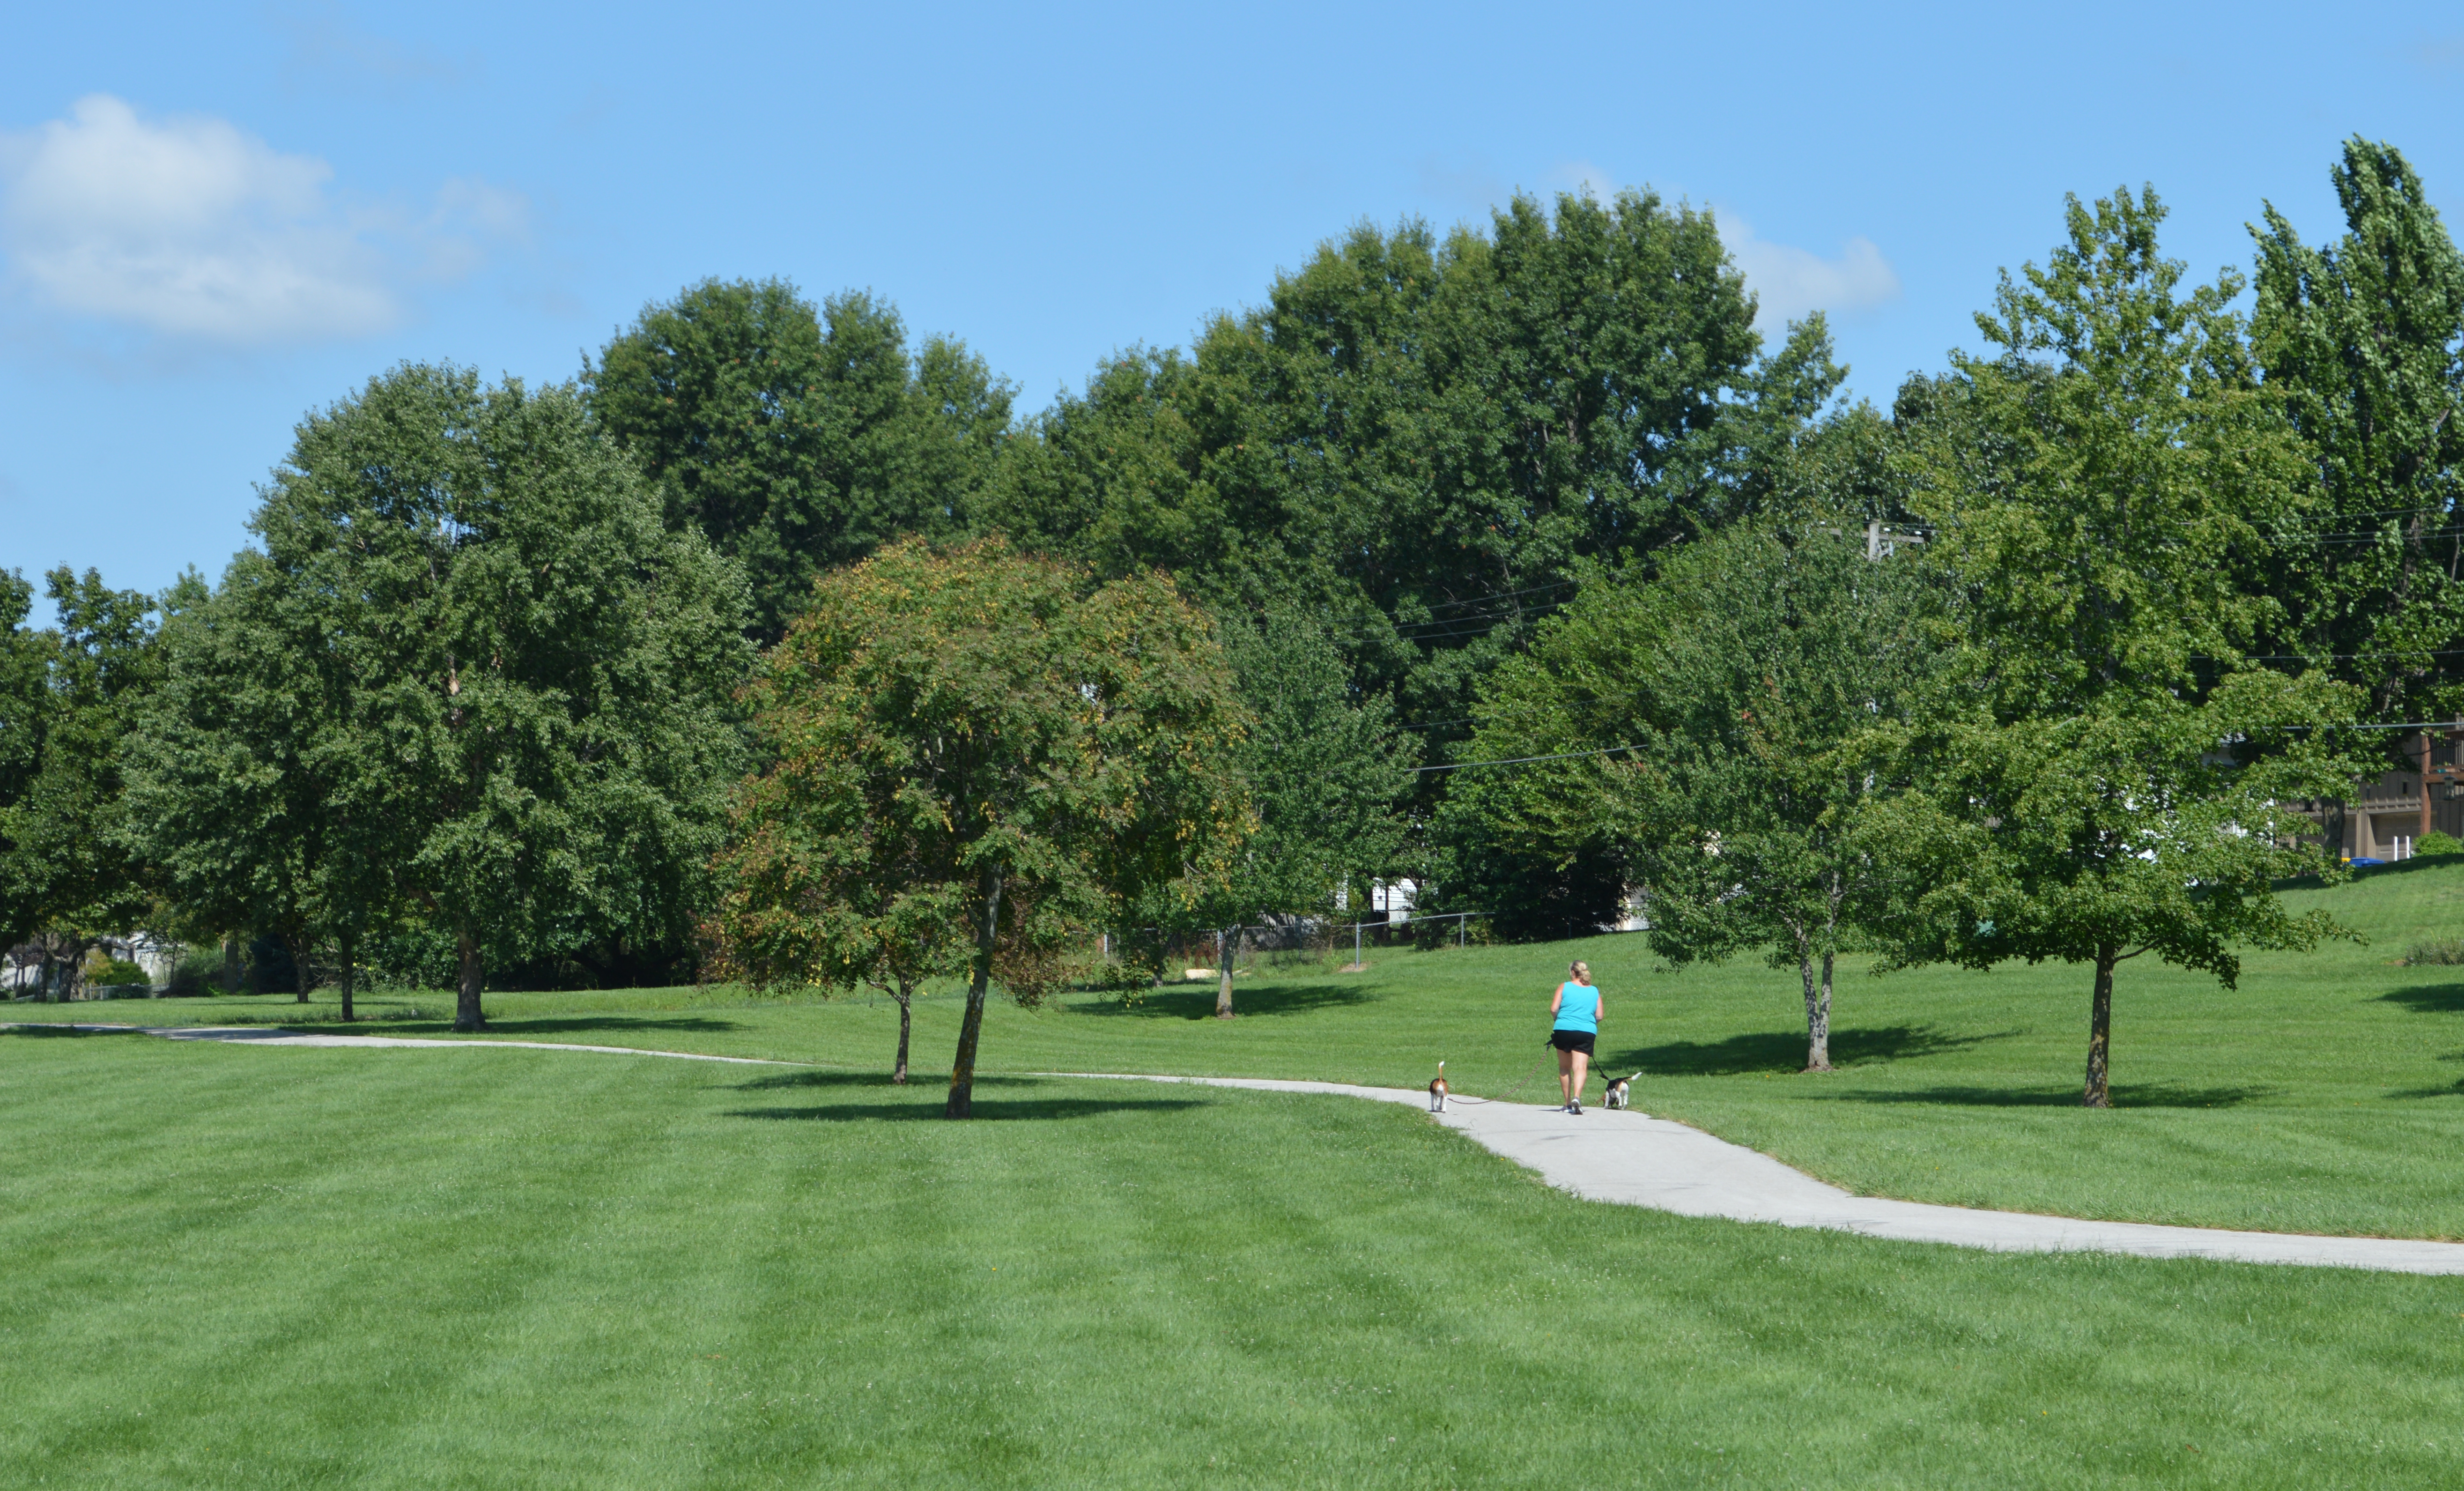 General image of walking trail in a park